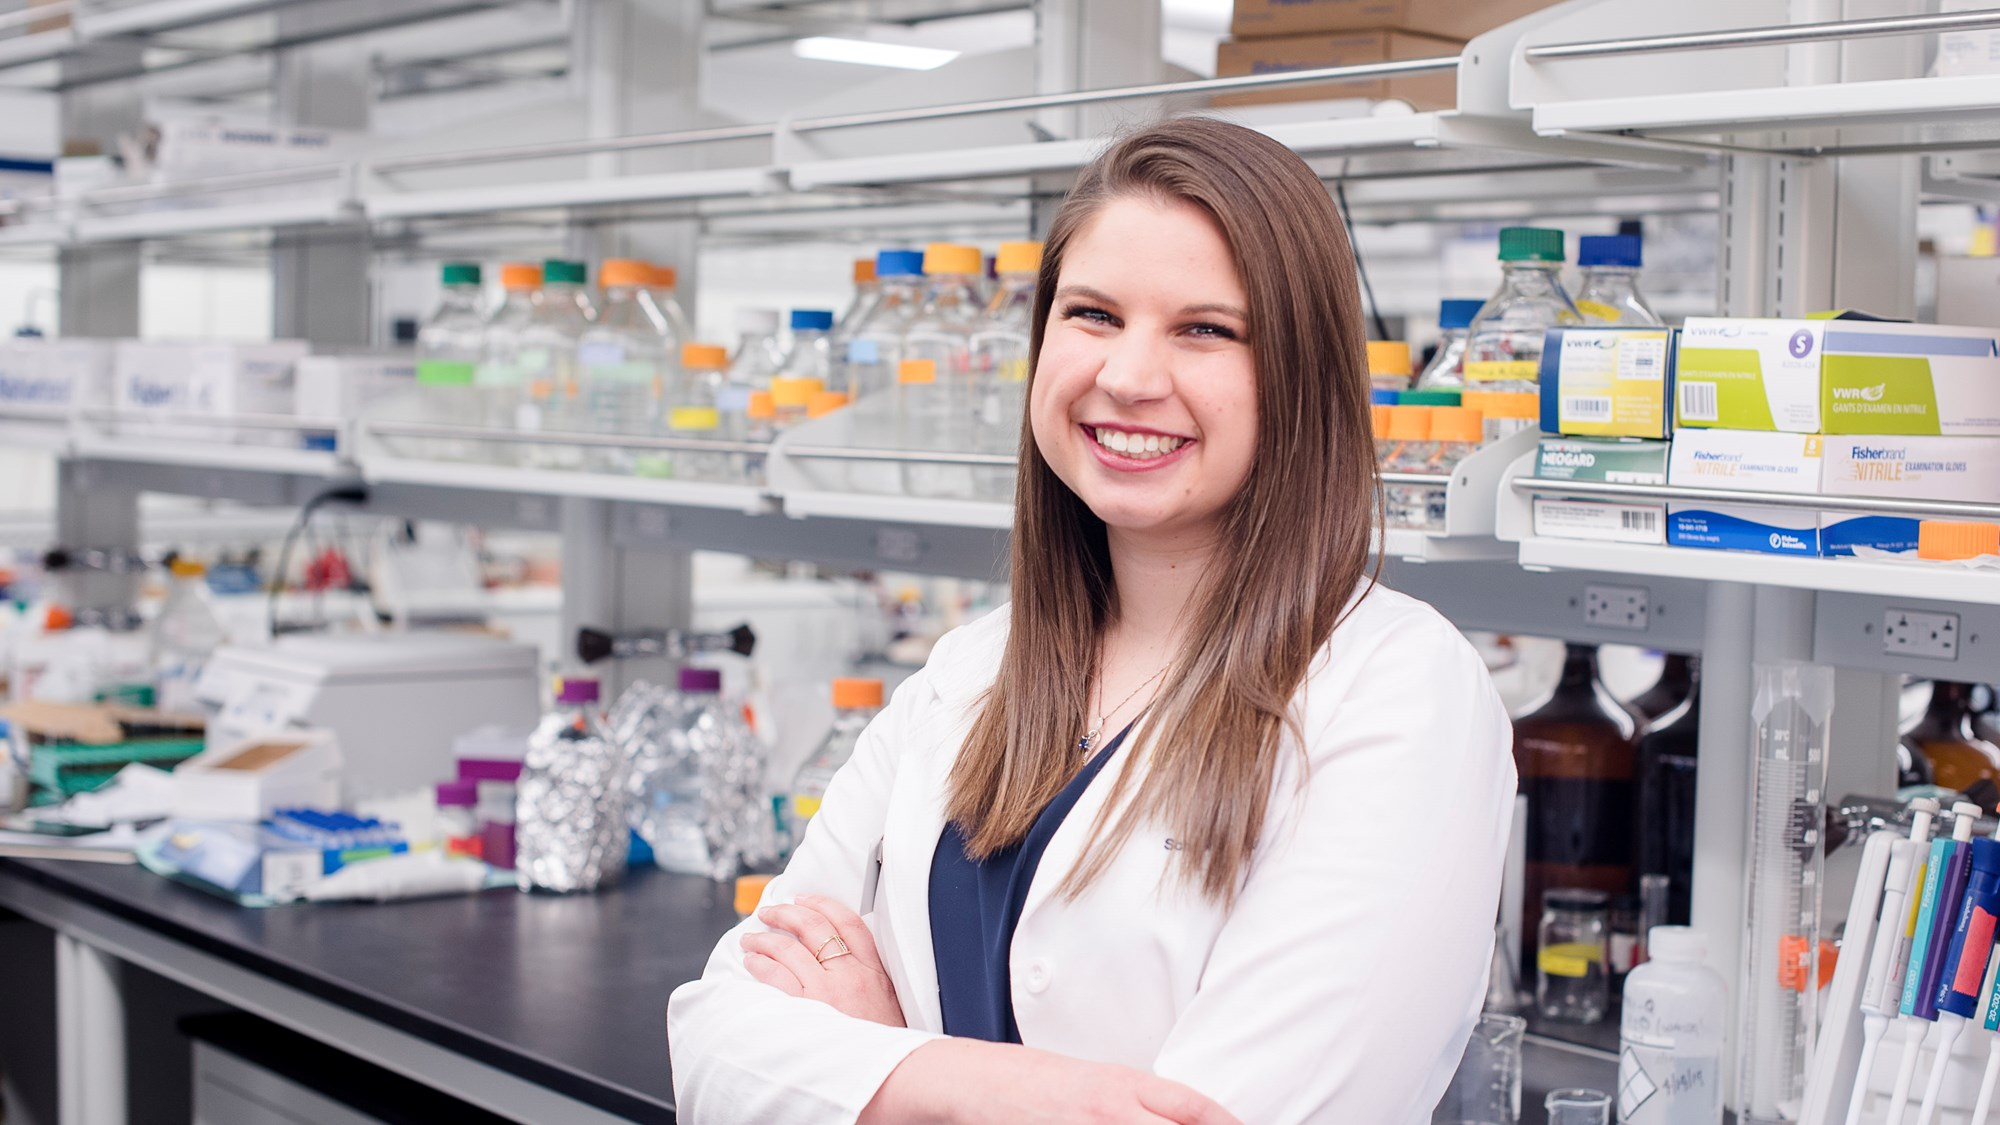 Maddie Harvey is a 2020 graduate of the WVU School of Pharmacy